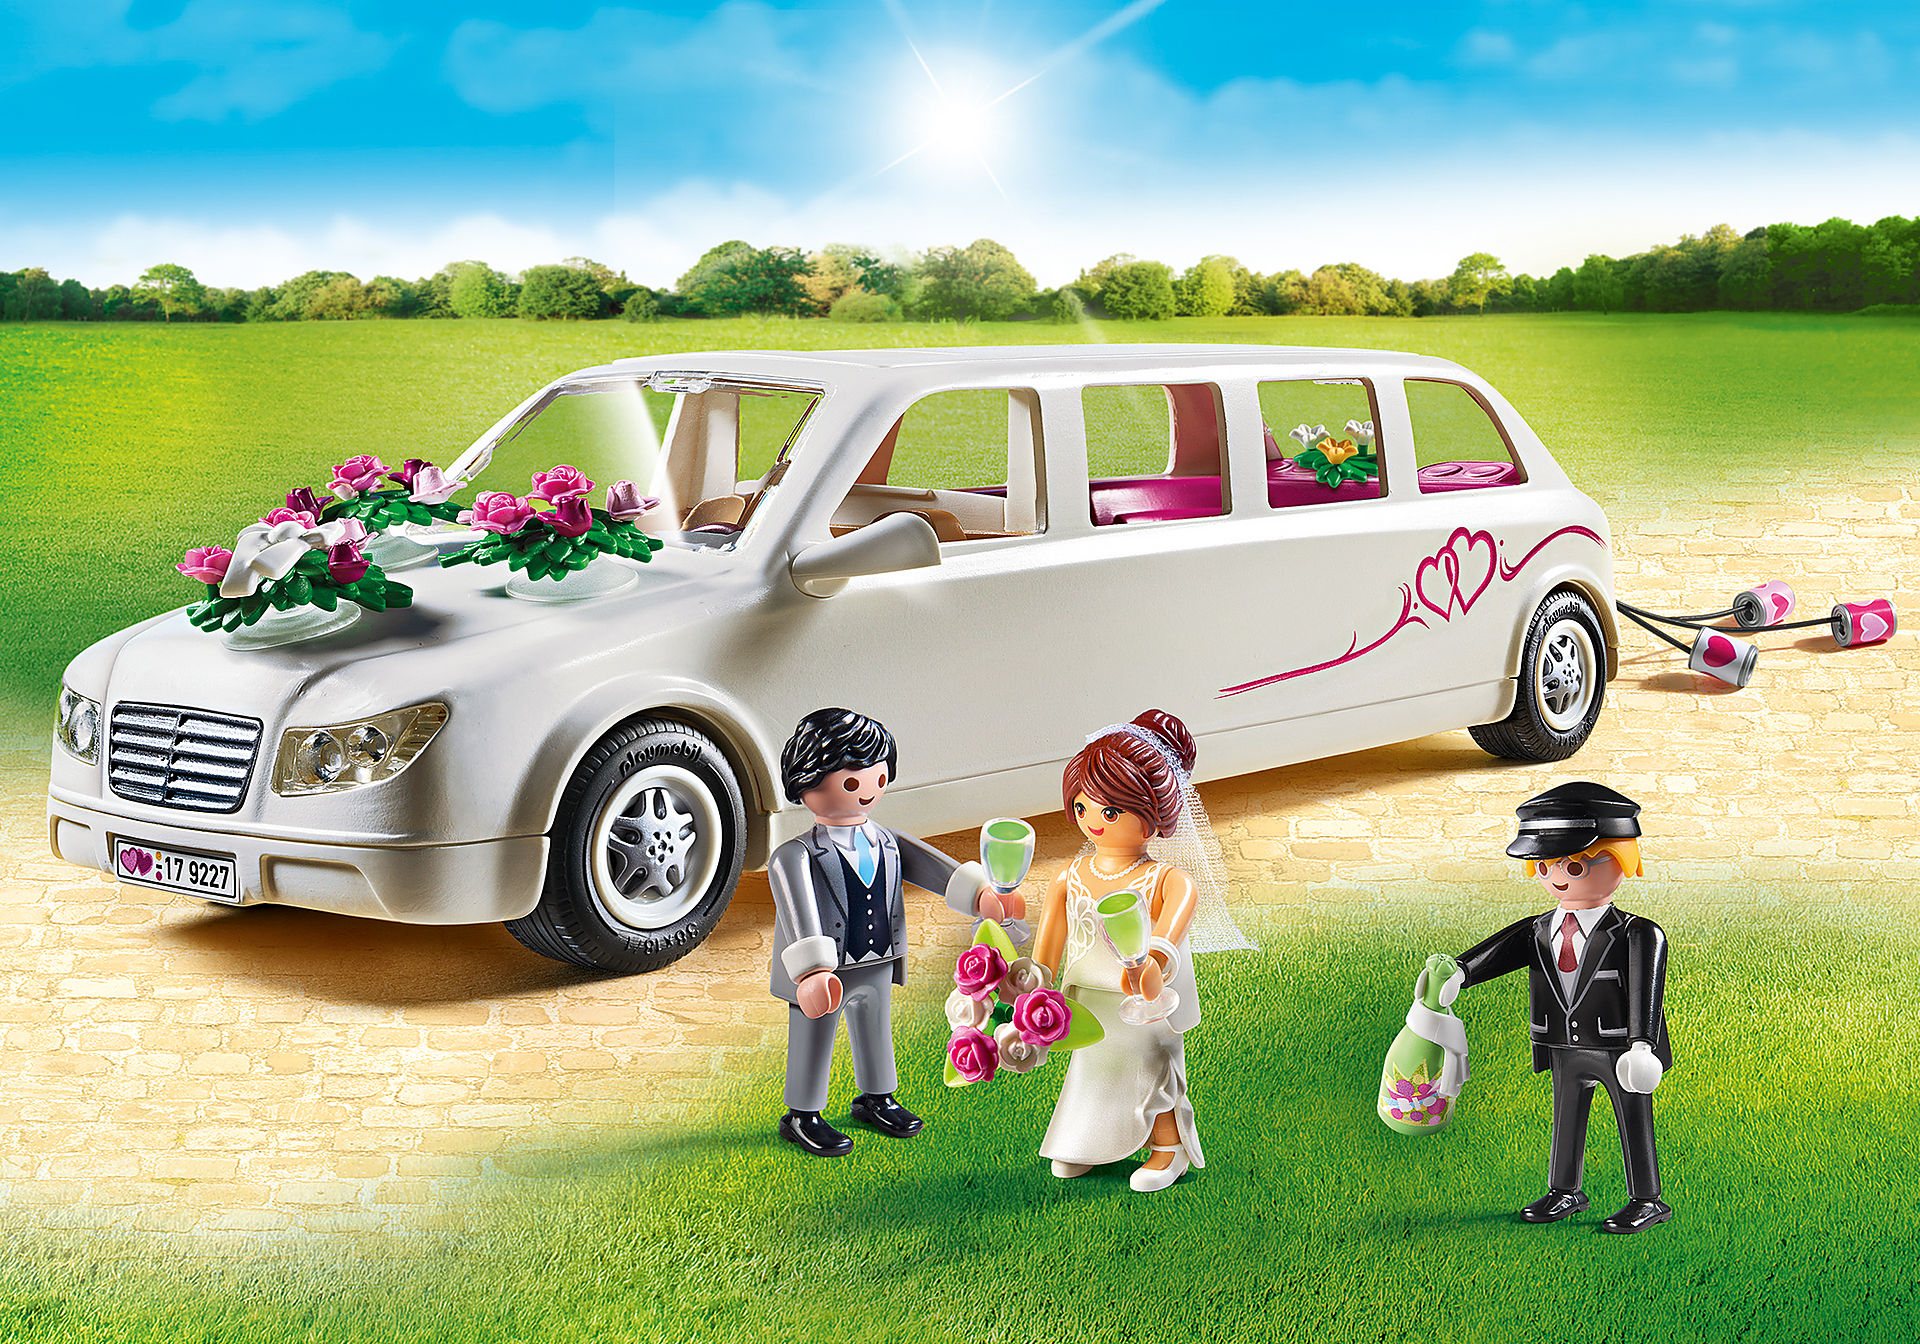 http://media.playmobil.com/i/playmobil/9227_product_detail/Hochzeitslimousine